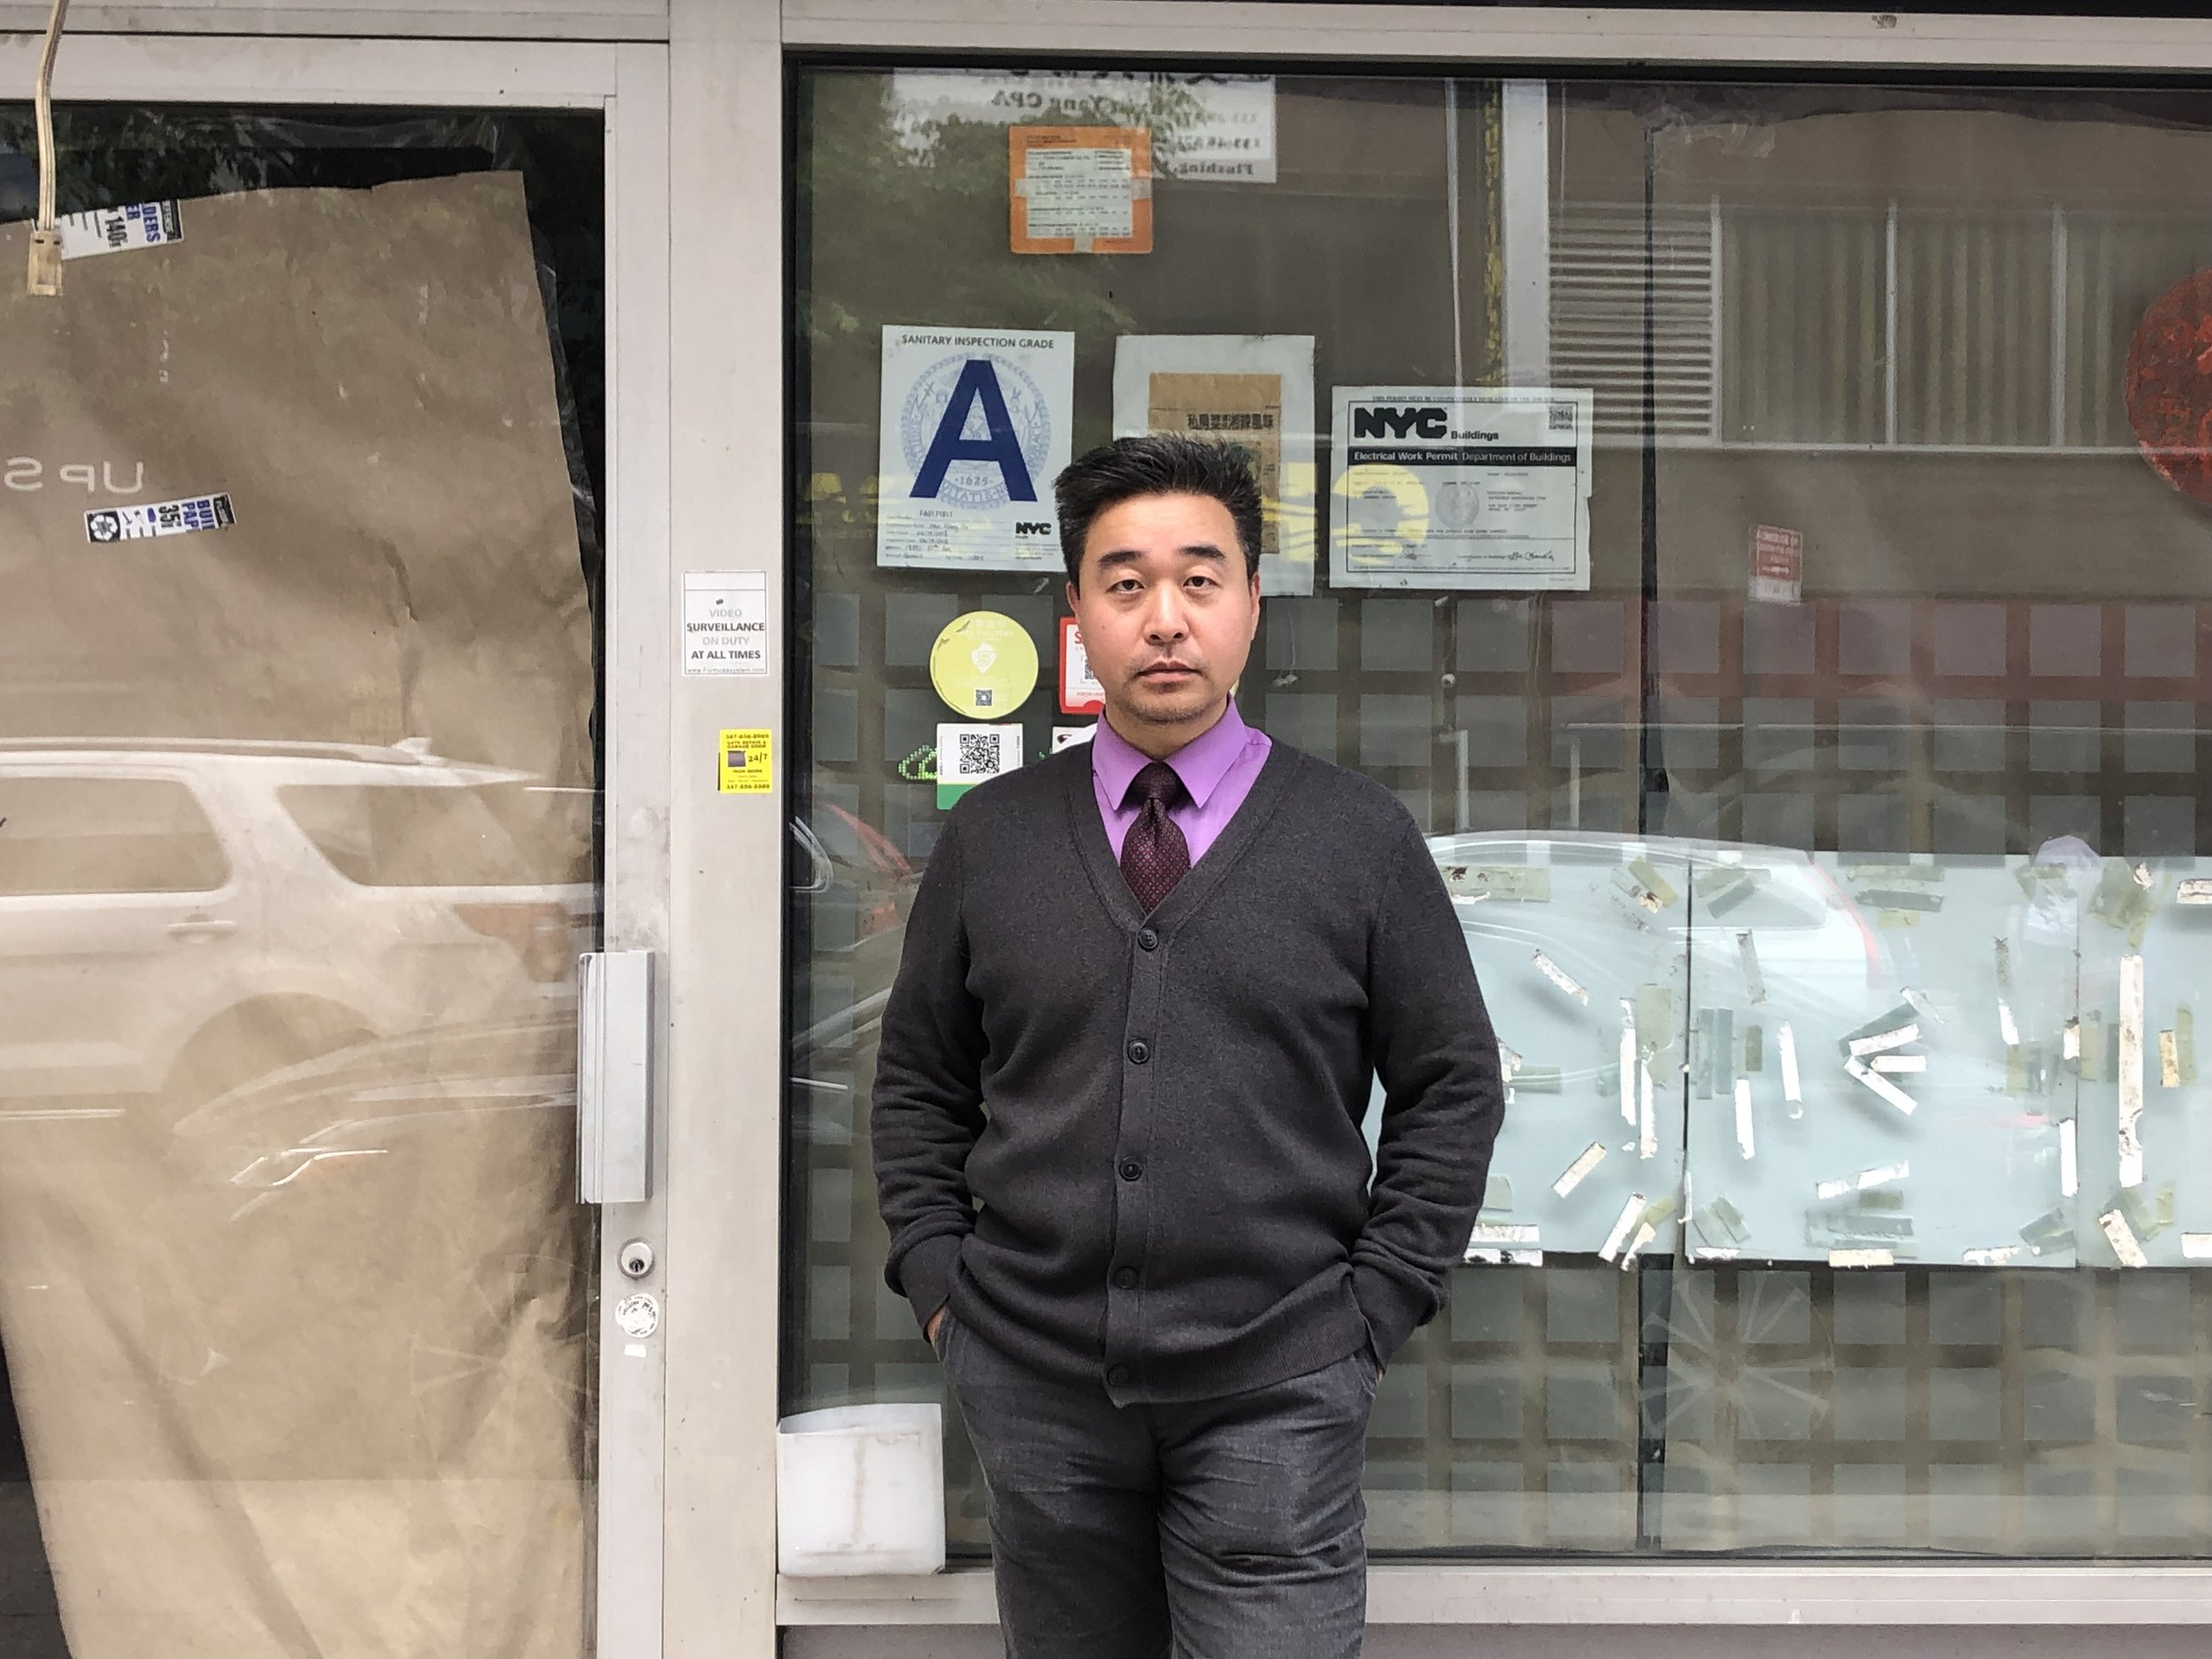 John Choe, the executive director of the Greater Flushing Chamber of Commerce, catalogs business closures and guided the Eagle on a tour of the shuttered shops and restaurants.  Eagle  photo by Naeisha Rose.